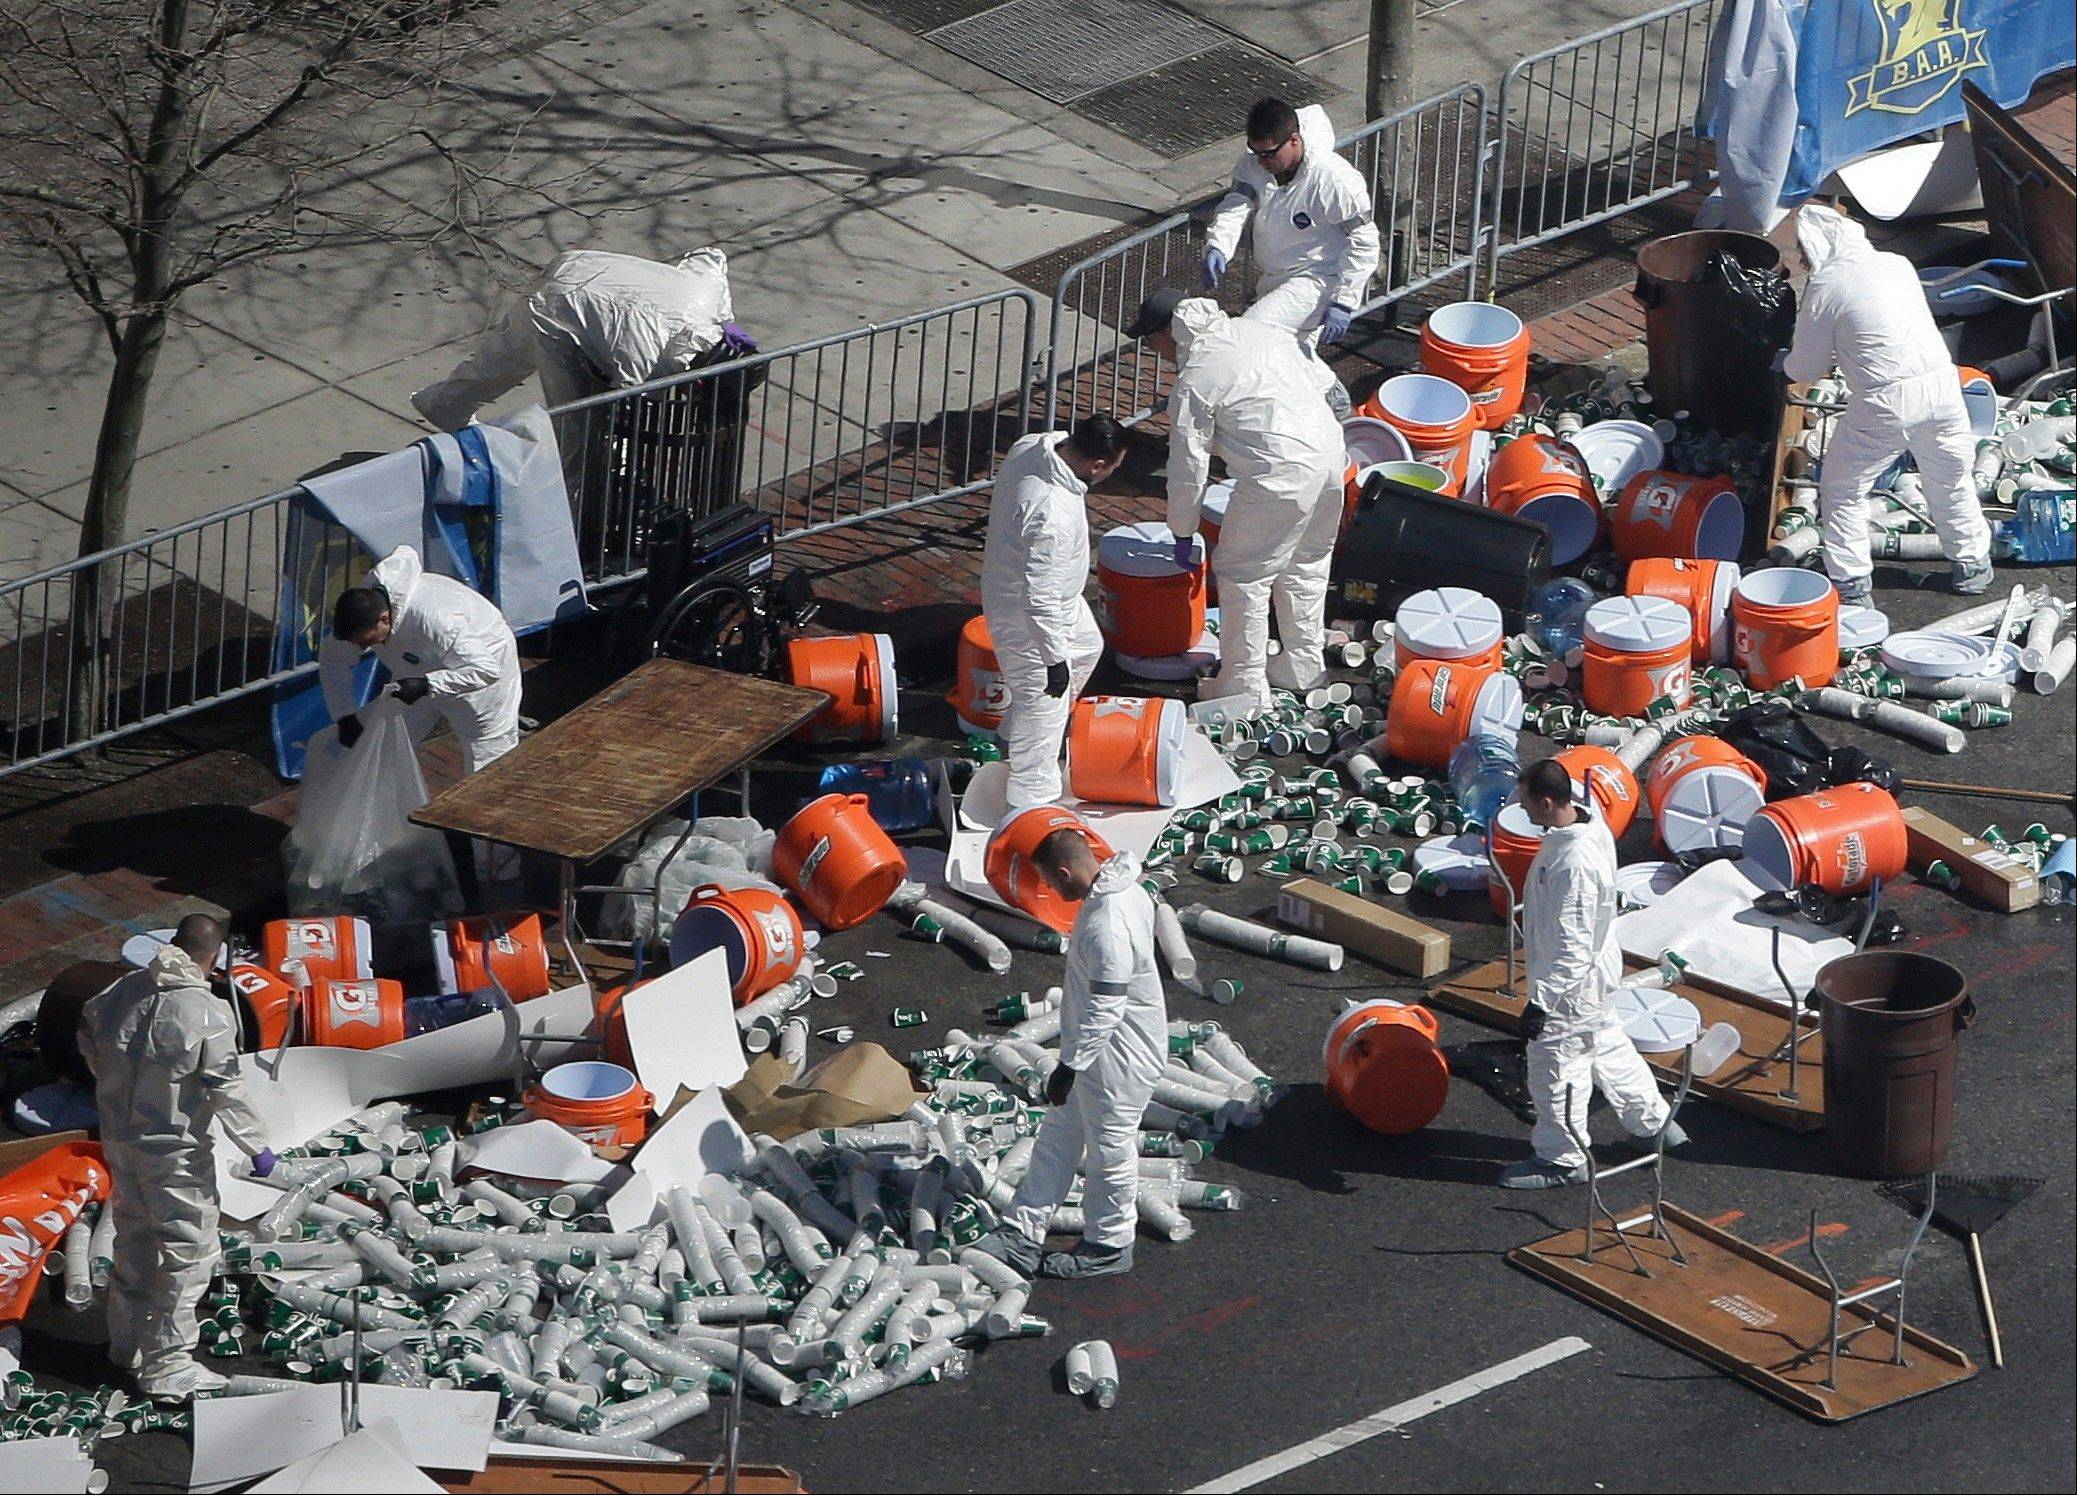 Investigators comb through the post finish line area of the Boston Marathon at Boylston Street, two days after two bombs exploded just before the finish line, Wednesday.